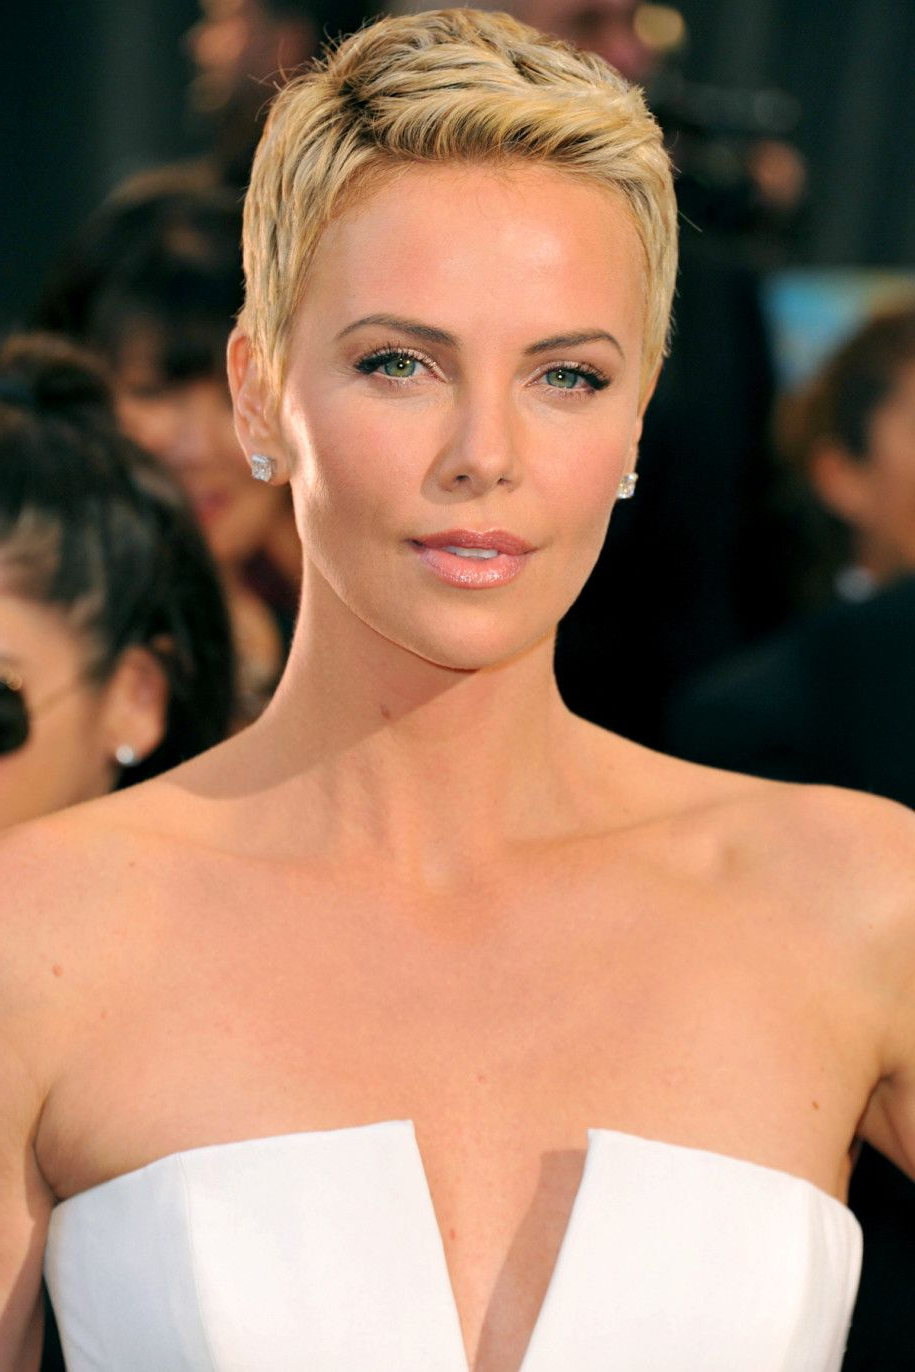 Charlize Theron Women Celebrity Short Hairstyles 2013   Fashion In Charlize Theron Short Haircuts (View 8 of 25)